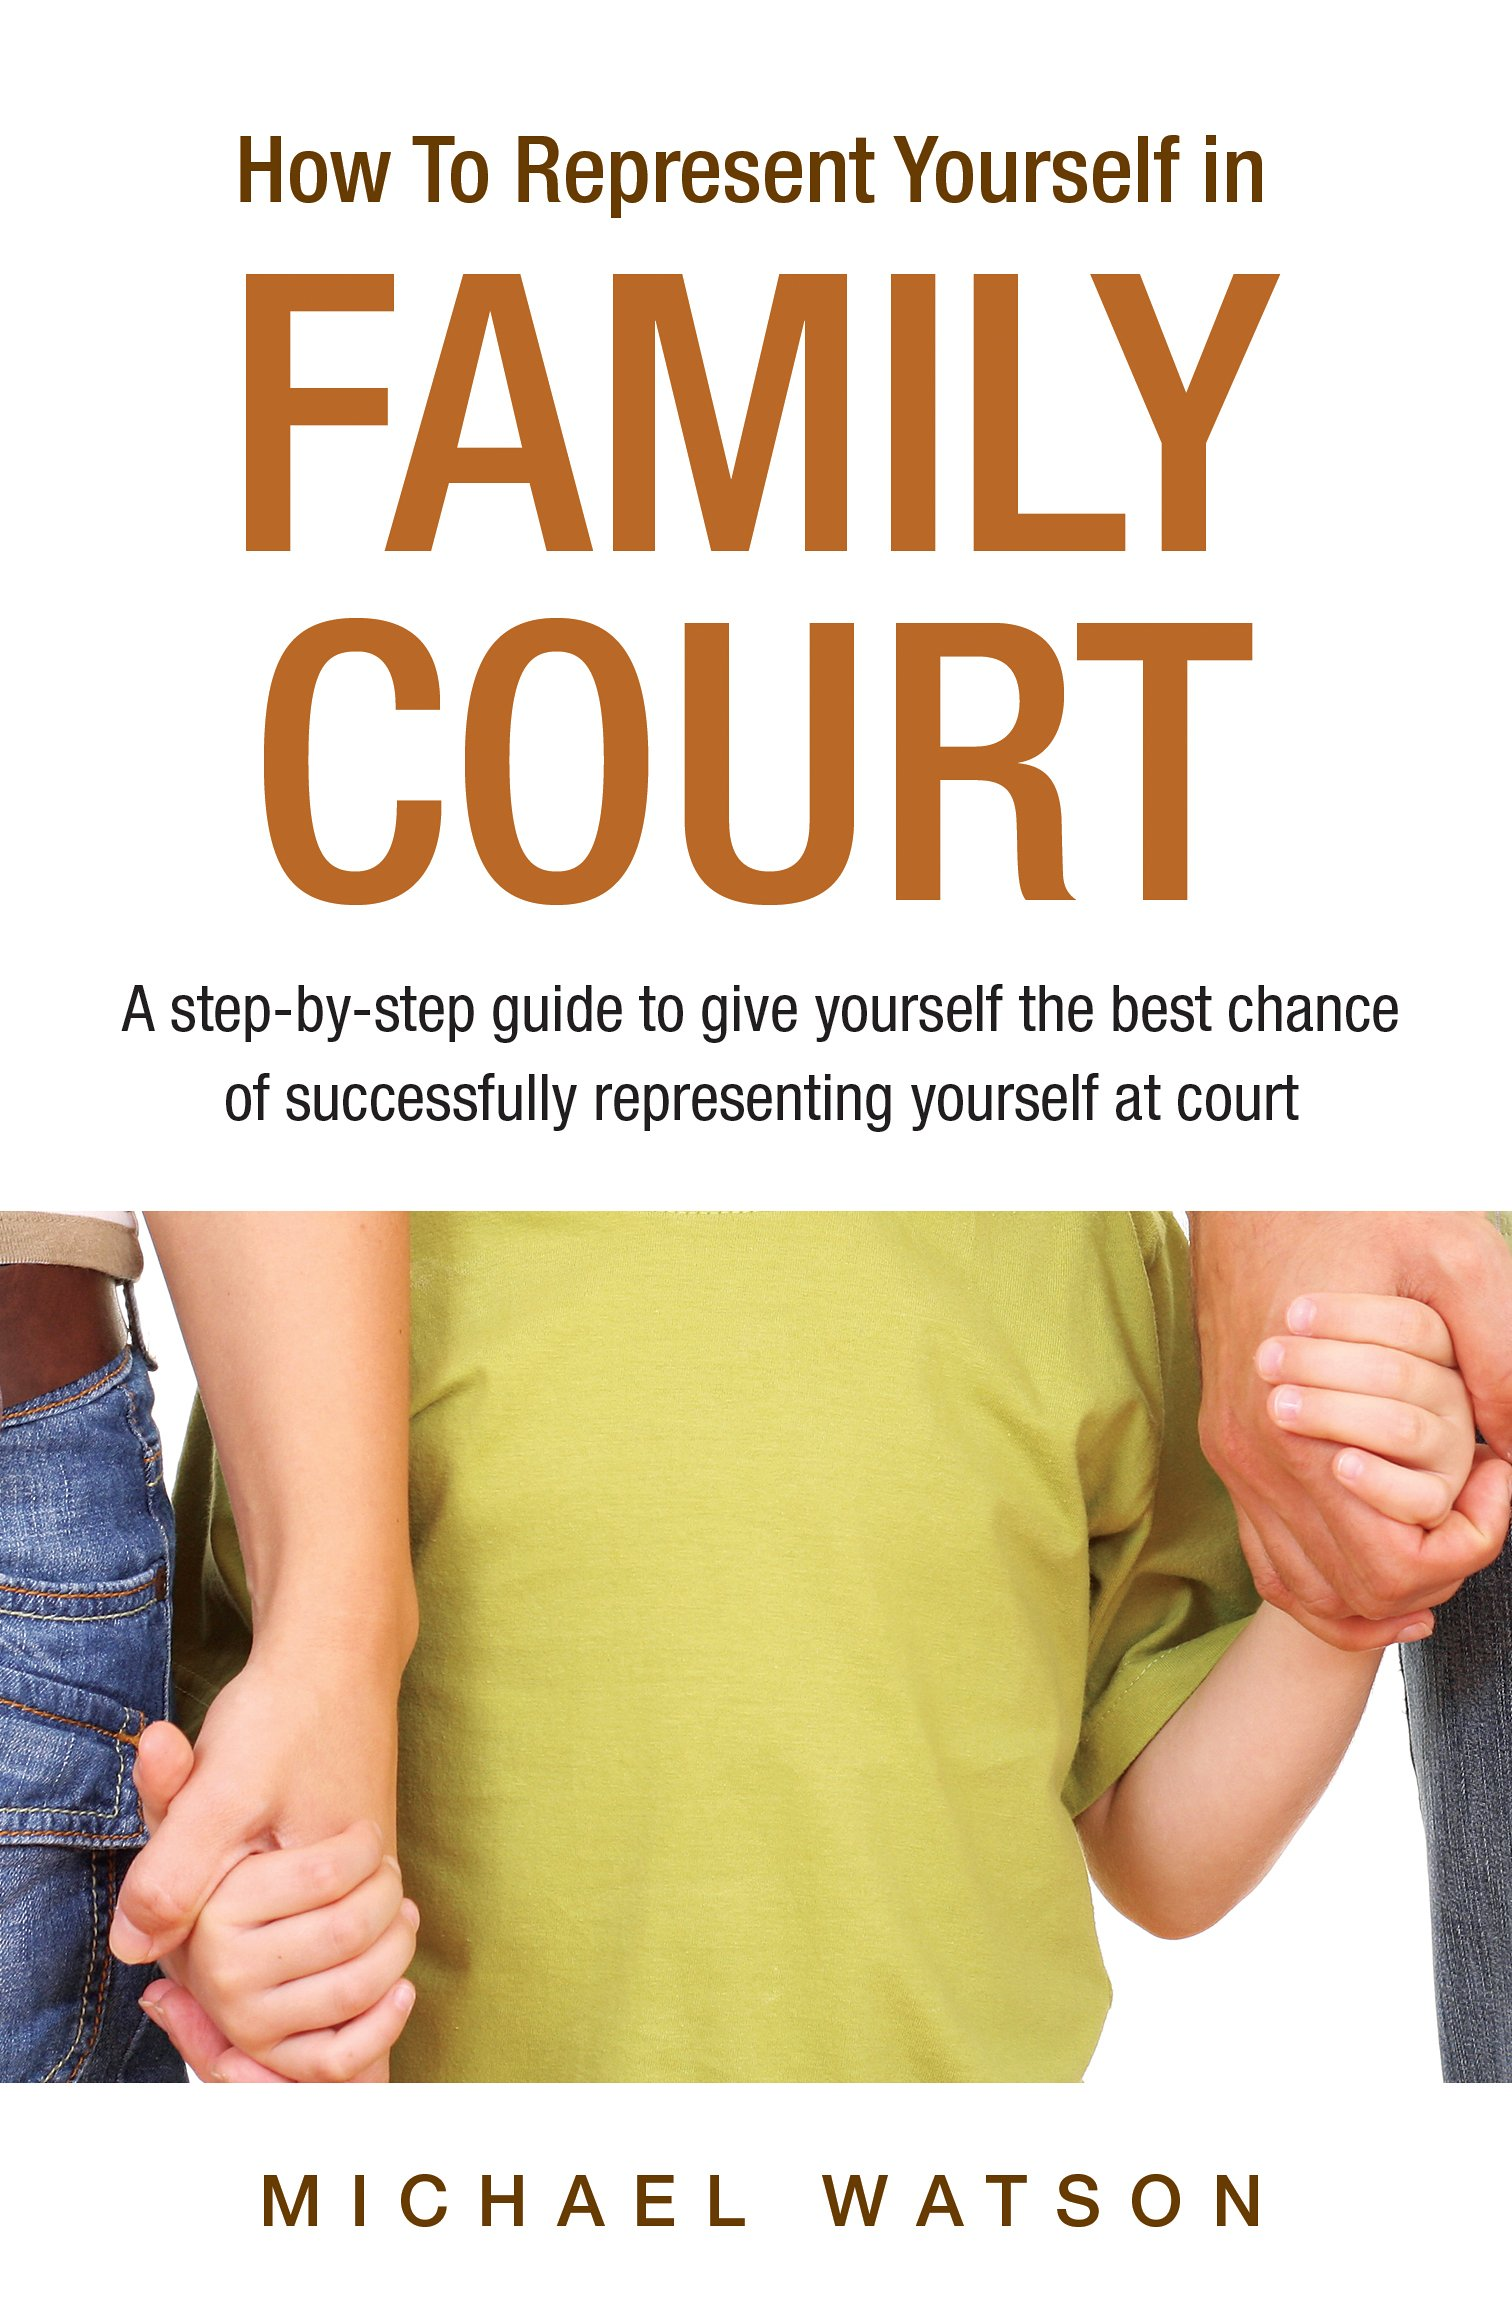 Image OfHow To Represent Yourself In Family Court